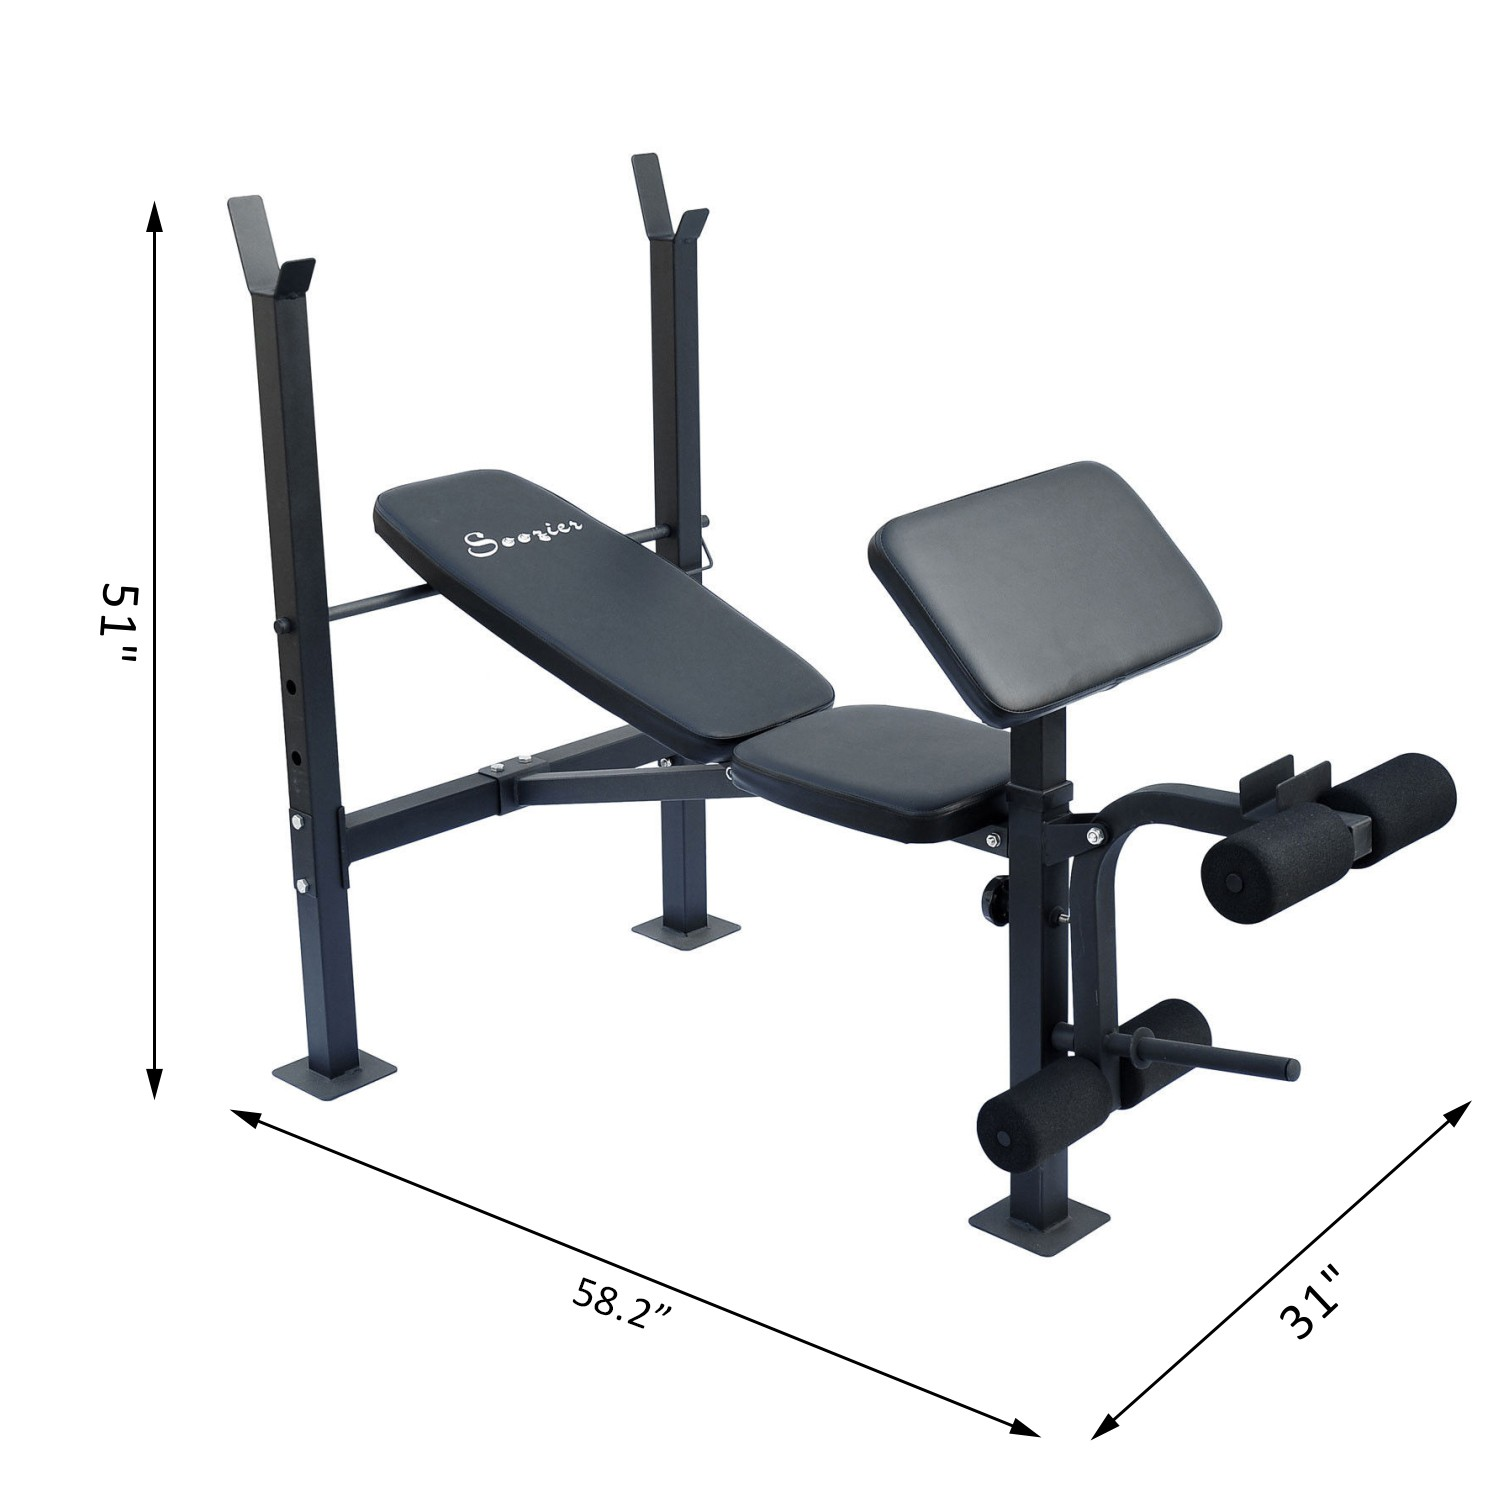 Incline Bench Sale | Craigslist Weight Bench | Bench Weight Set for Sale